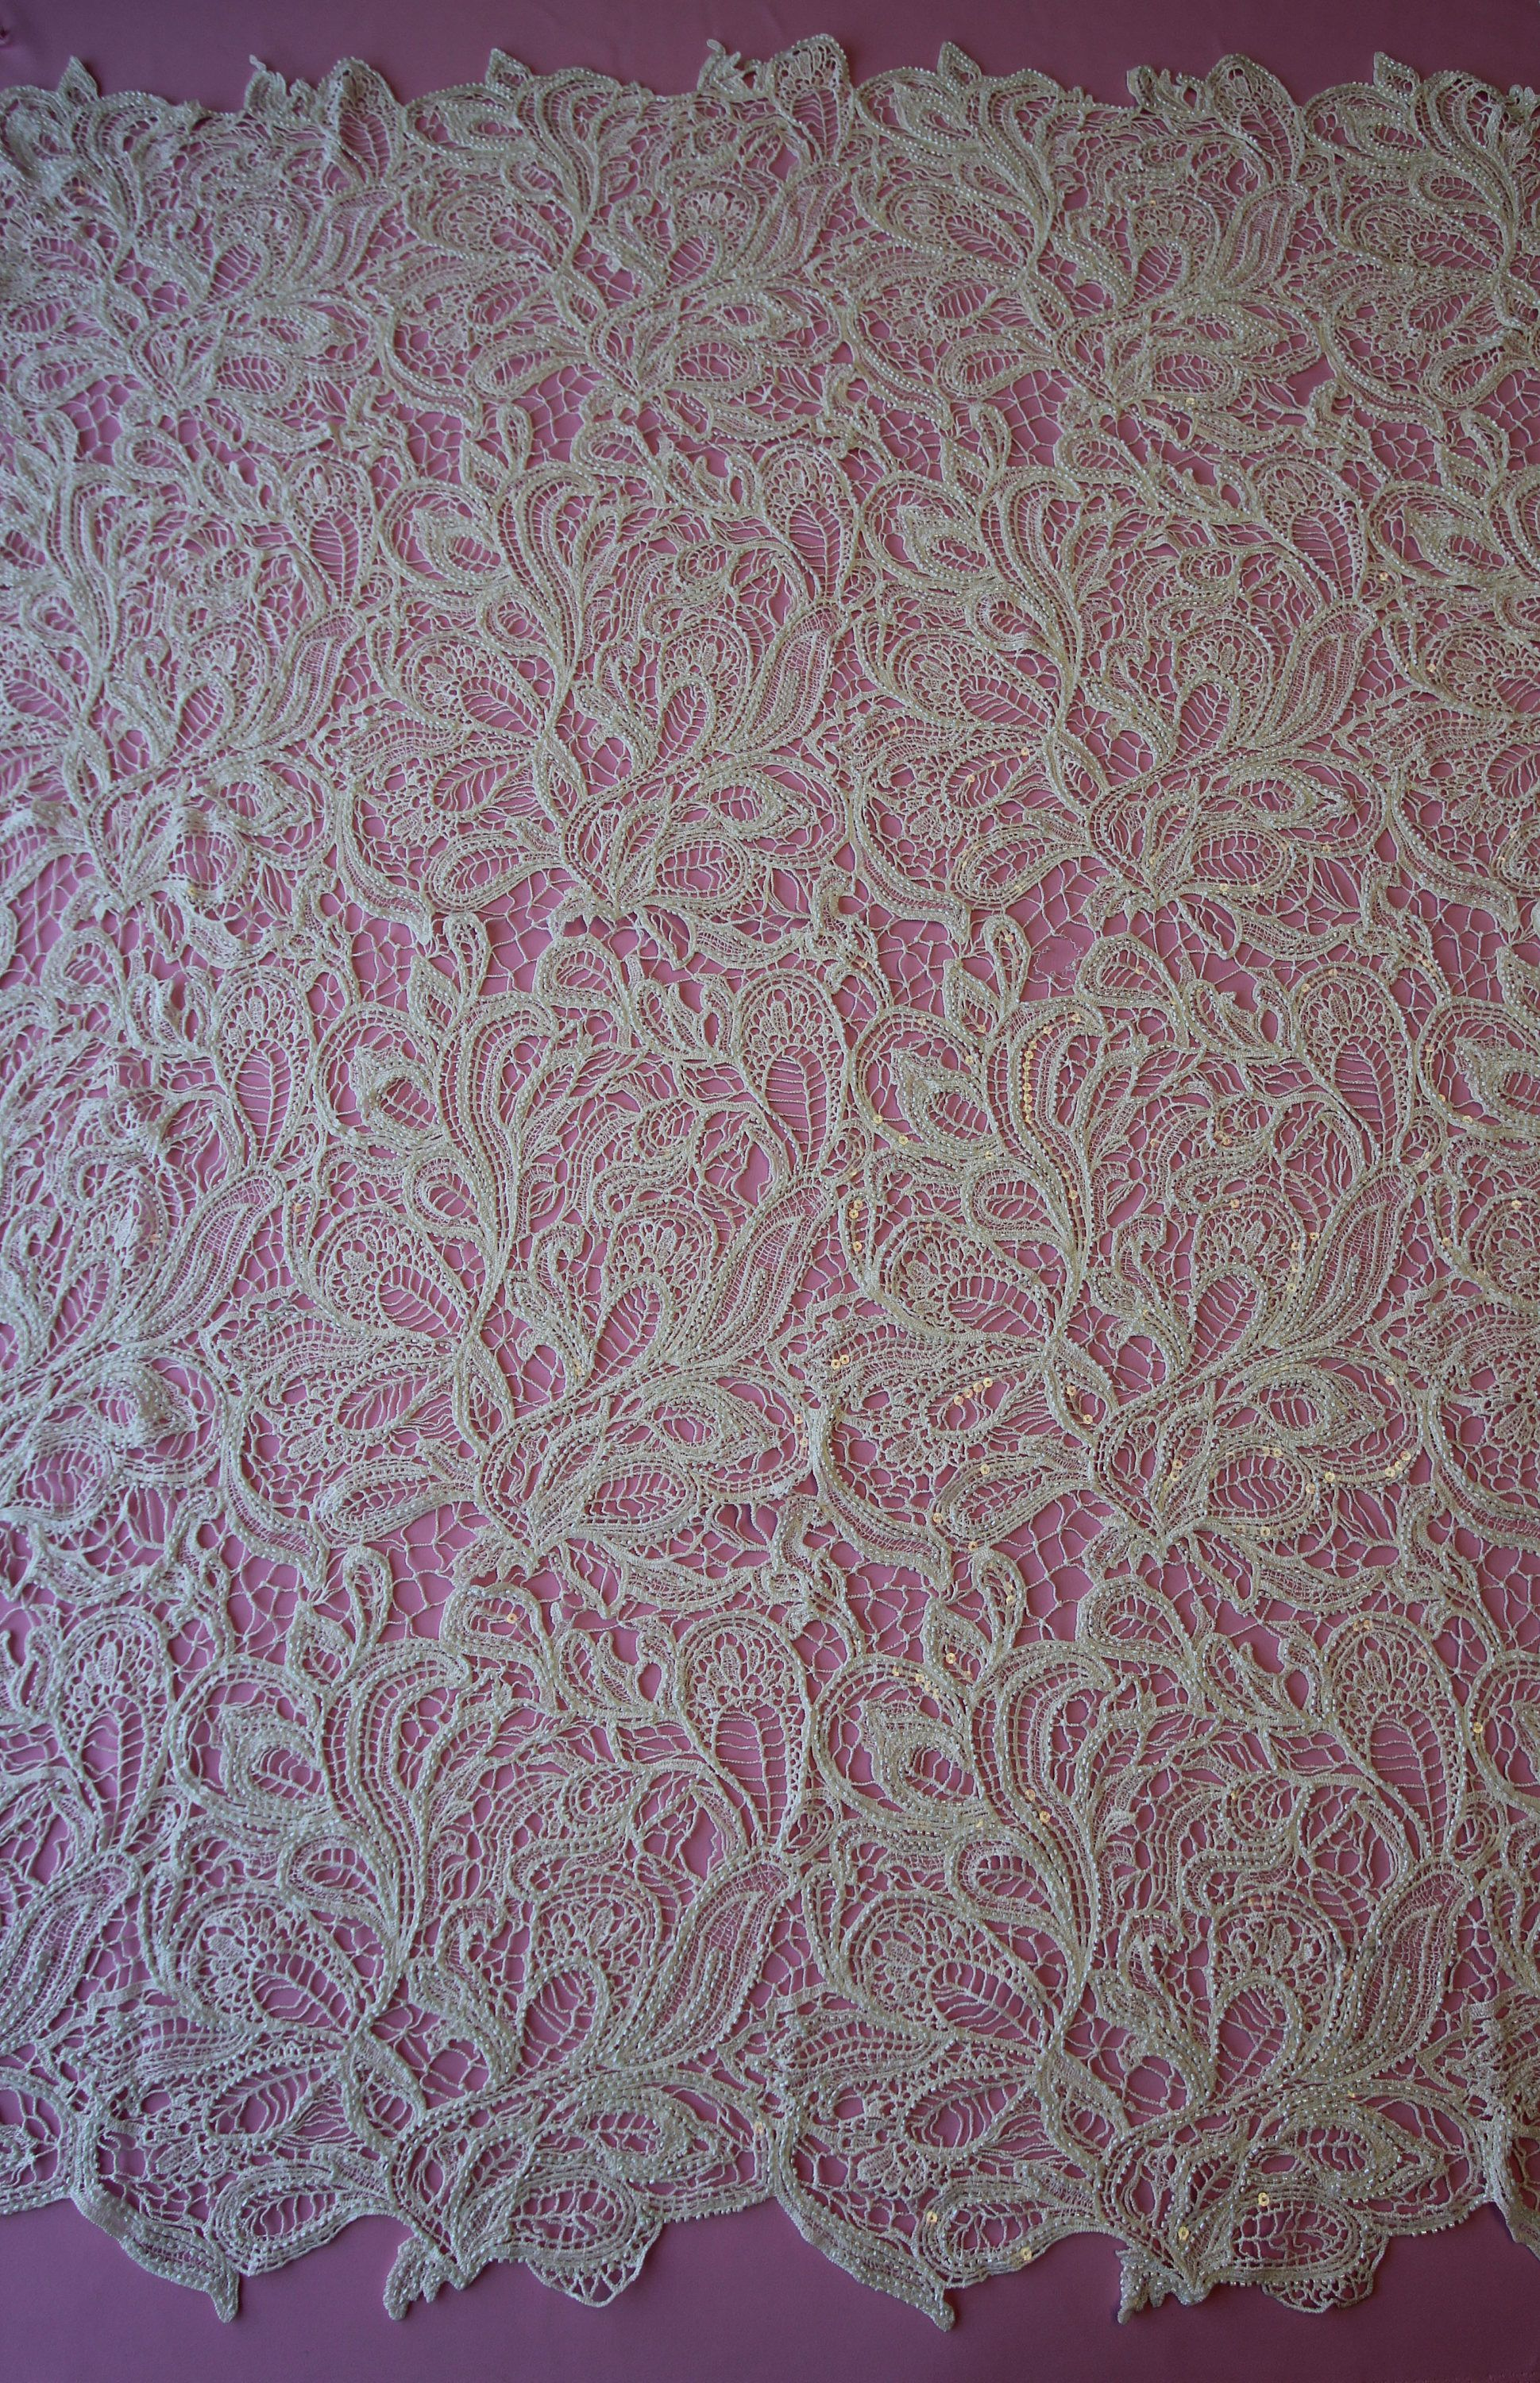 Enchanting and tantalising, Spirit has been created through Guipure Embroidery. With no backing, the fabric is an intricate blend of flowing shapes into on another. Resembling a paisley or marquise, beading follows the outline of the shapes creating a shimmer effect. Reminiscent of 1920s glamour, this fabric oozes charisma. This lace measures 52 wide. LISTING IS FOR 1 YARD! WE CAN GET AS MANY YARDS AS YOU NEED! We are the go to source for designers and dressmakers looking to add a unique…